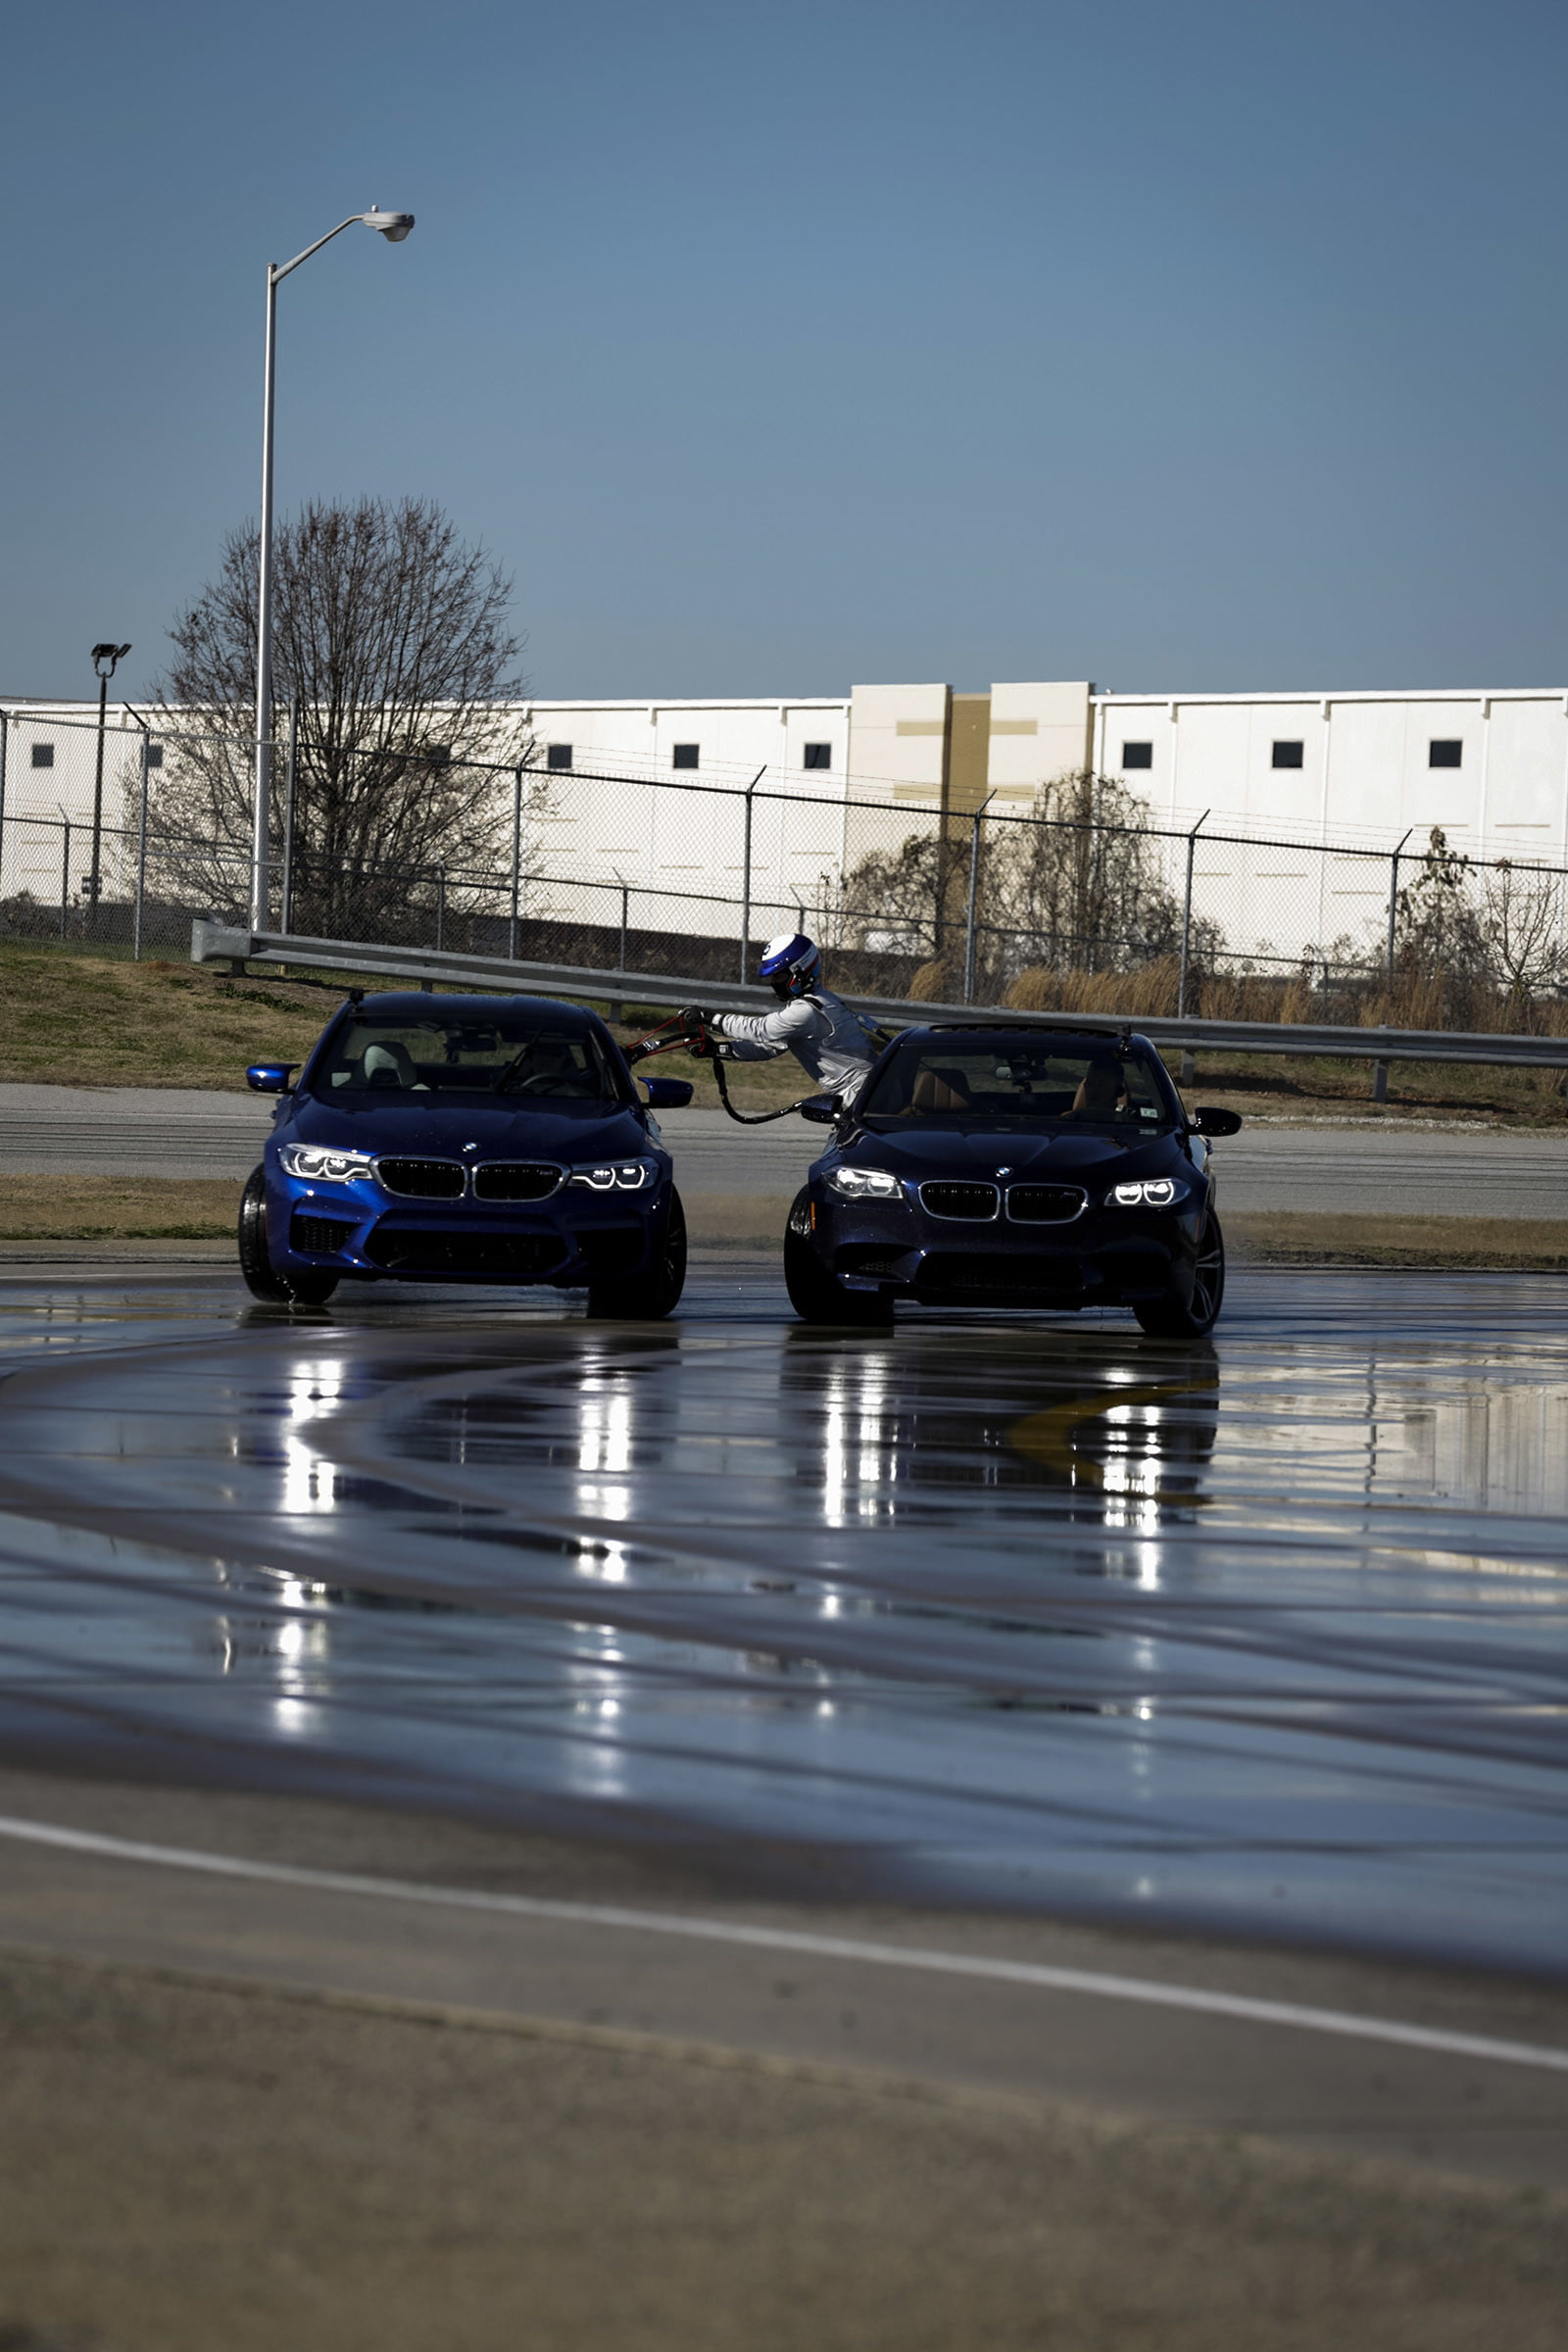 bmw sets two guinness world records drifting sideways for 2325 miles record  longest drift with 2018 m5 8